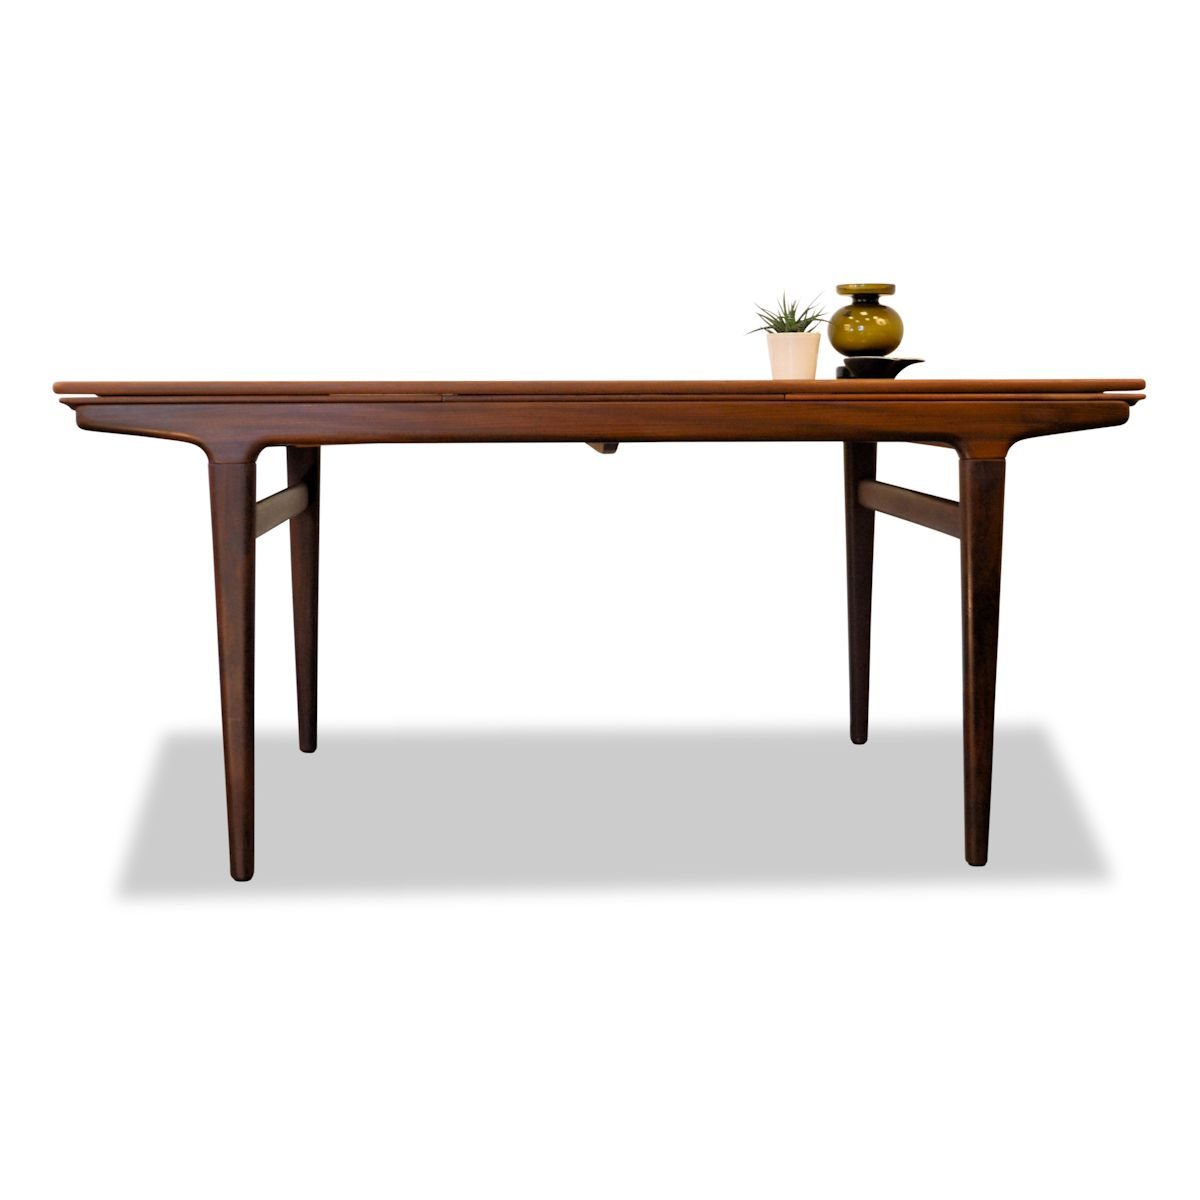 Vintage Teak Dining Table by Johannes Andersen